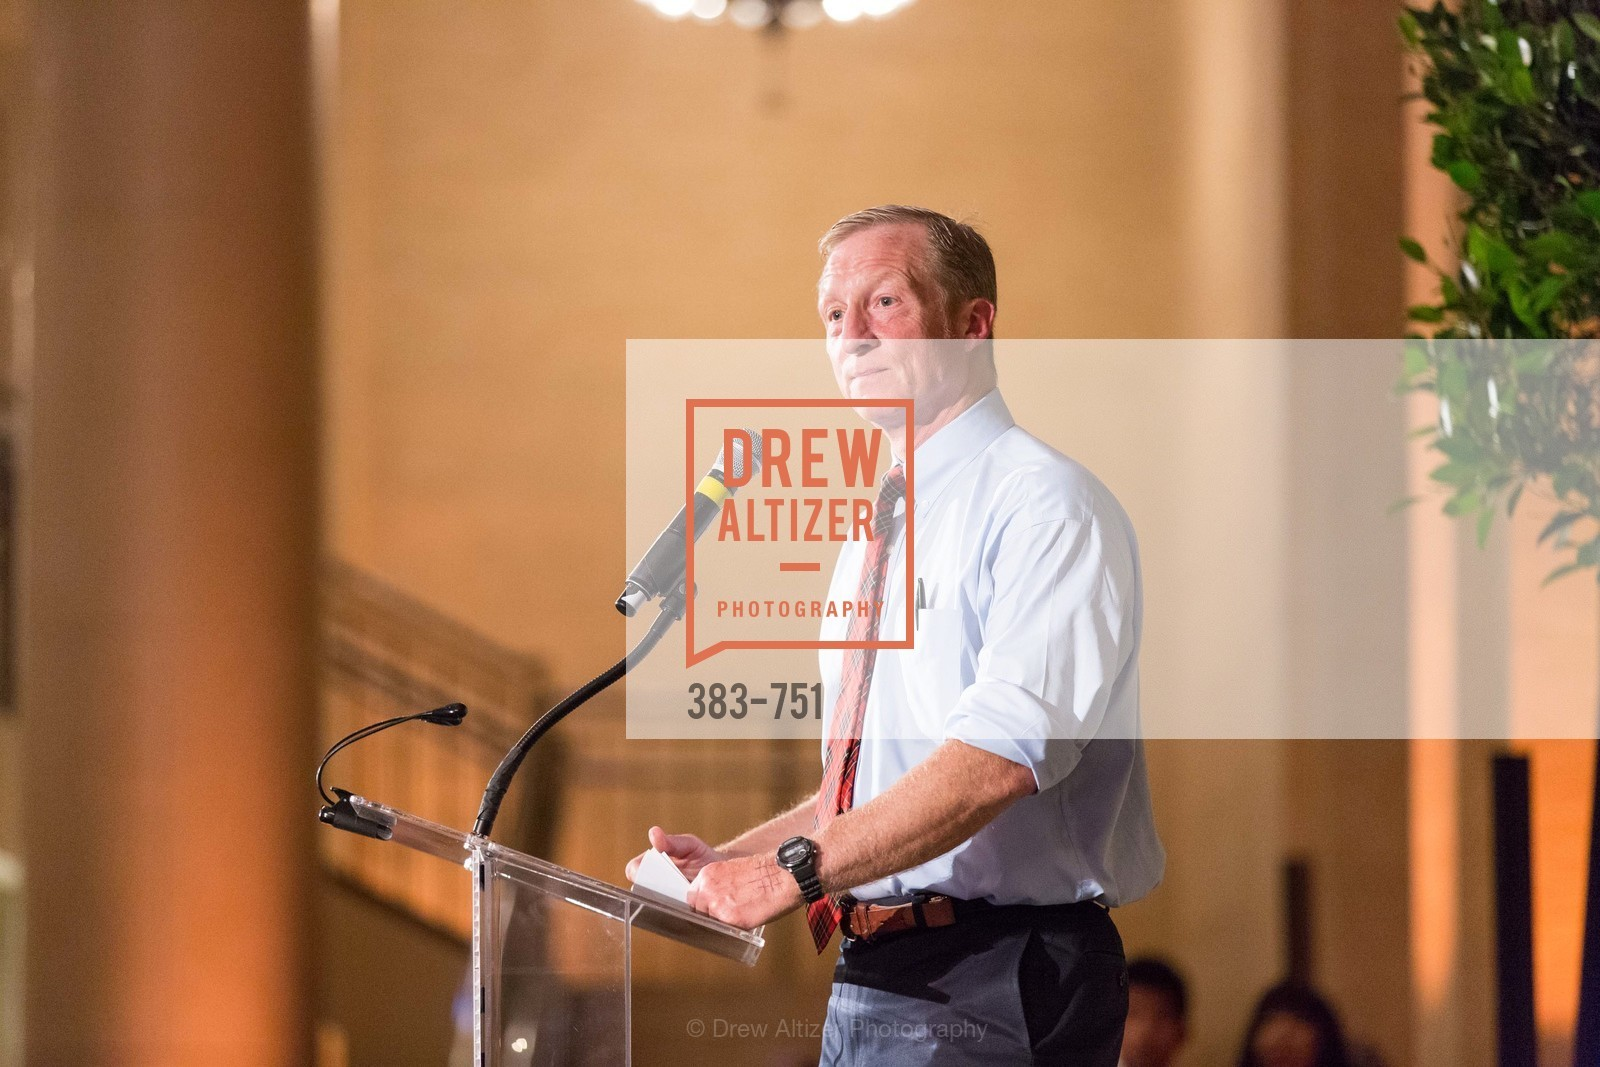 Tom Steyer, CENTER FOR ENVIRONMENTAL HEALTH (CEH) 2015 Gala, US, May 28th, 2015,Drew Altizer, Drew Altizer Photography, full-service agency, private events, San Francisco photographer, photographer california